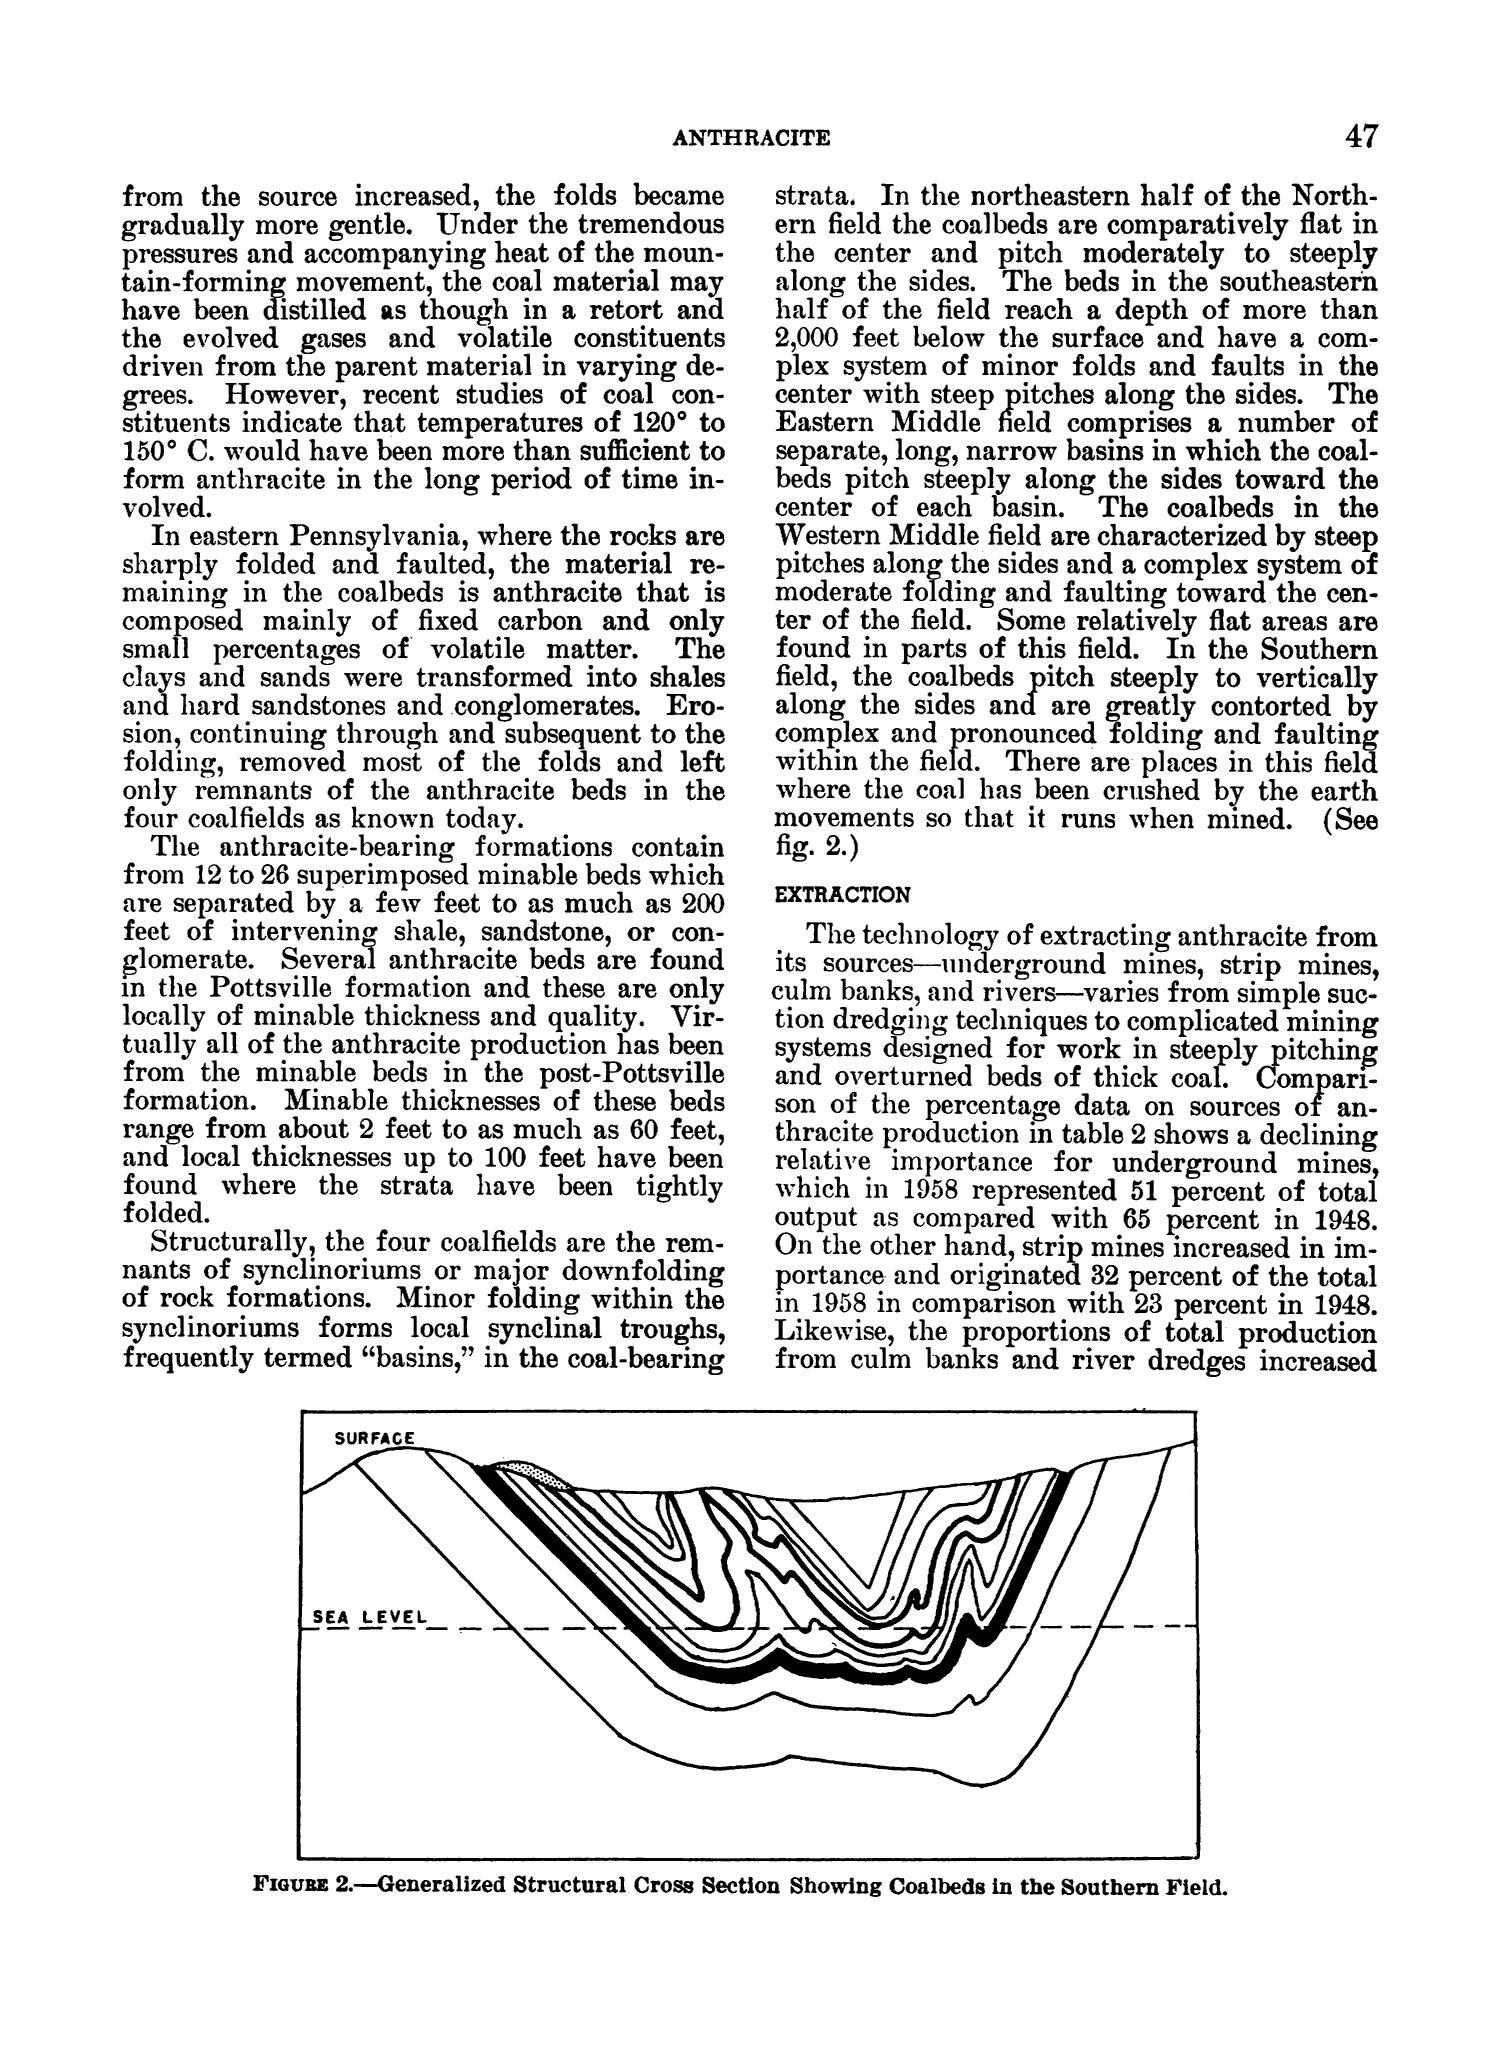 Mineral Facts and Problems: 1960 Edition                                                                                                      47